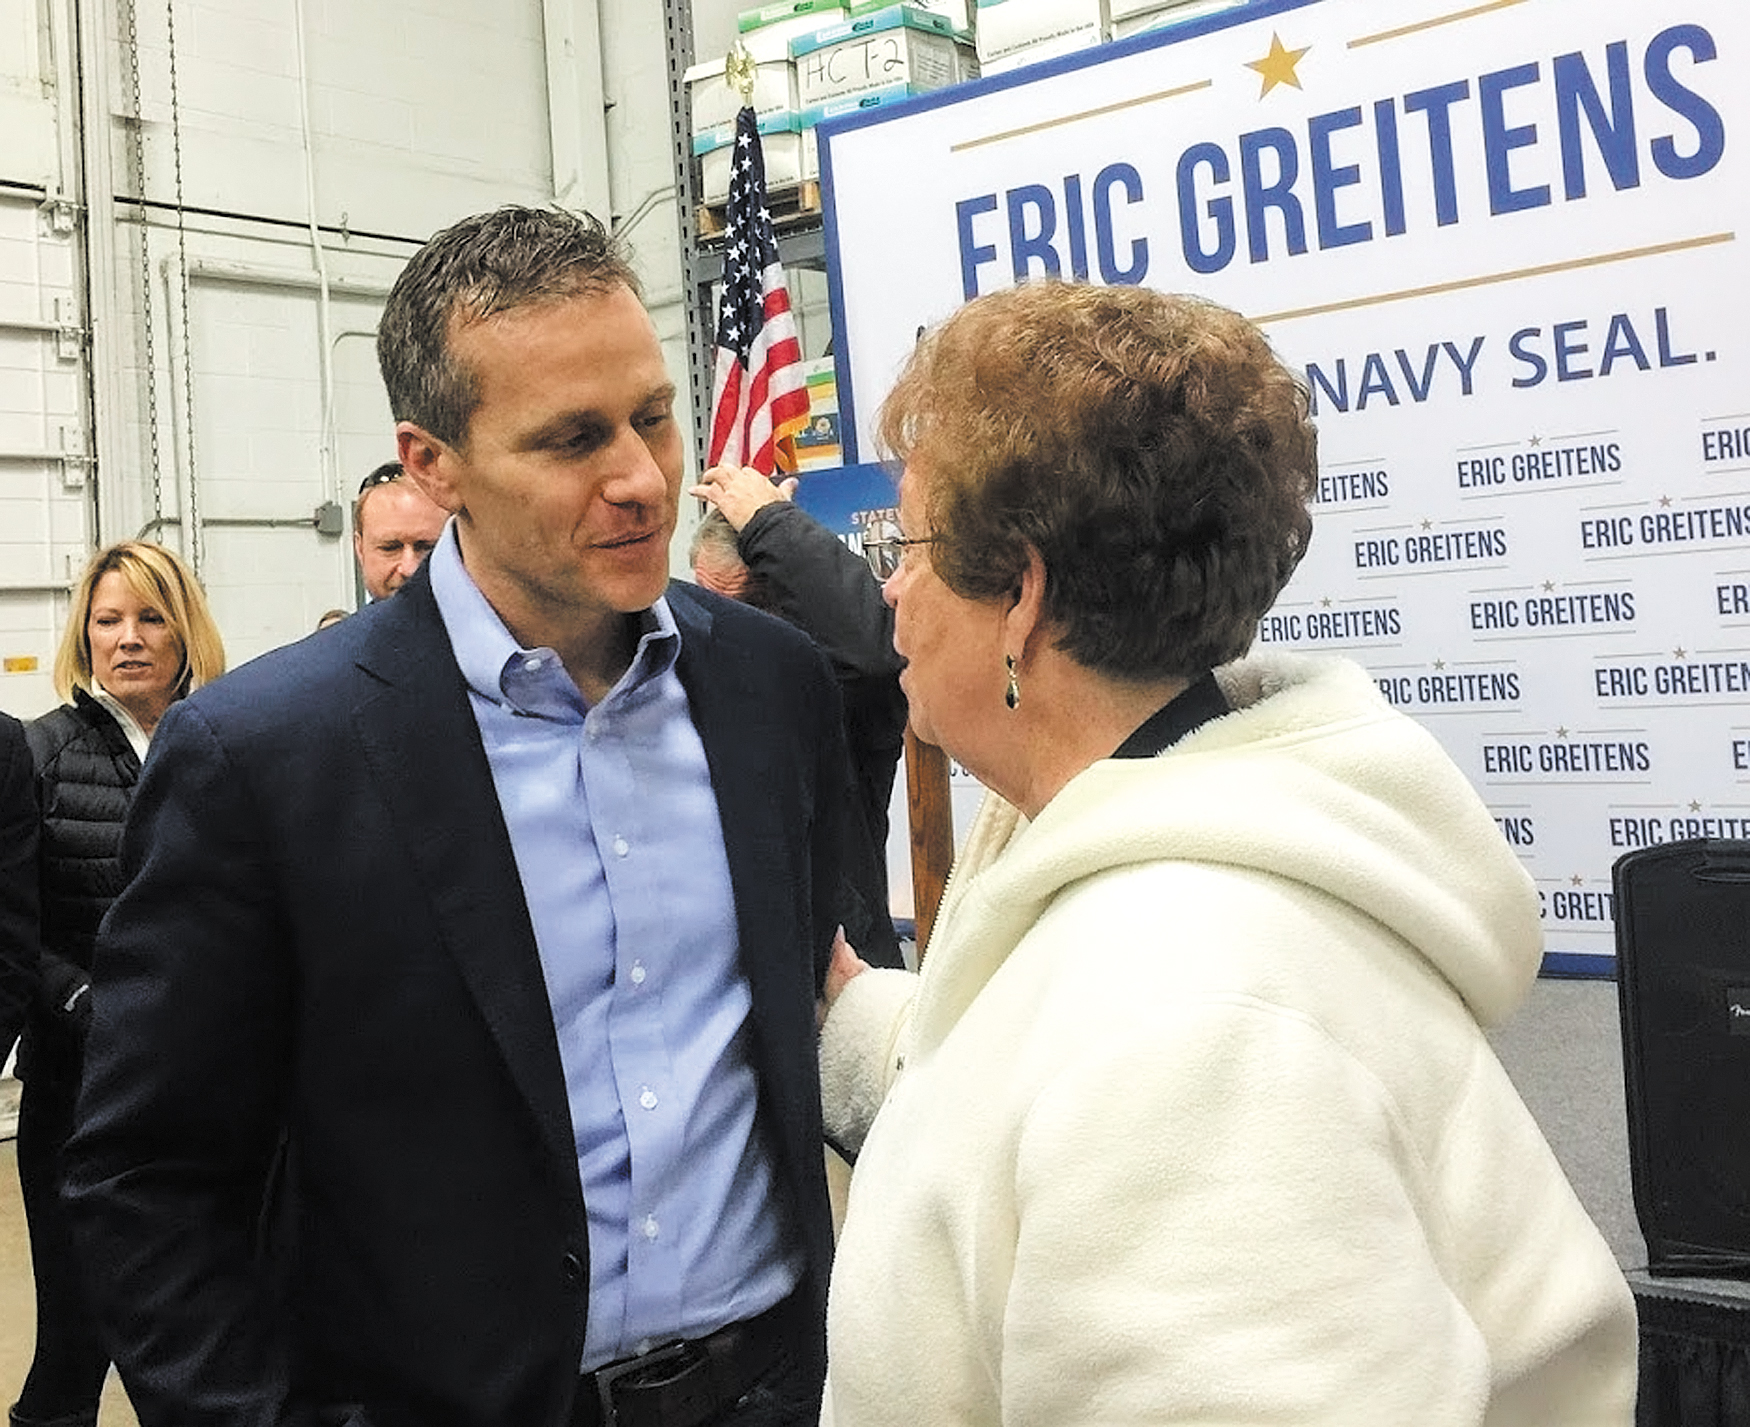 Hawley: Greitens Campaign's Use of Charity Donor List Broke Law